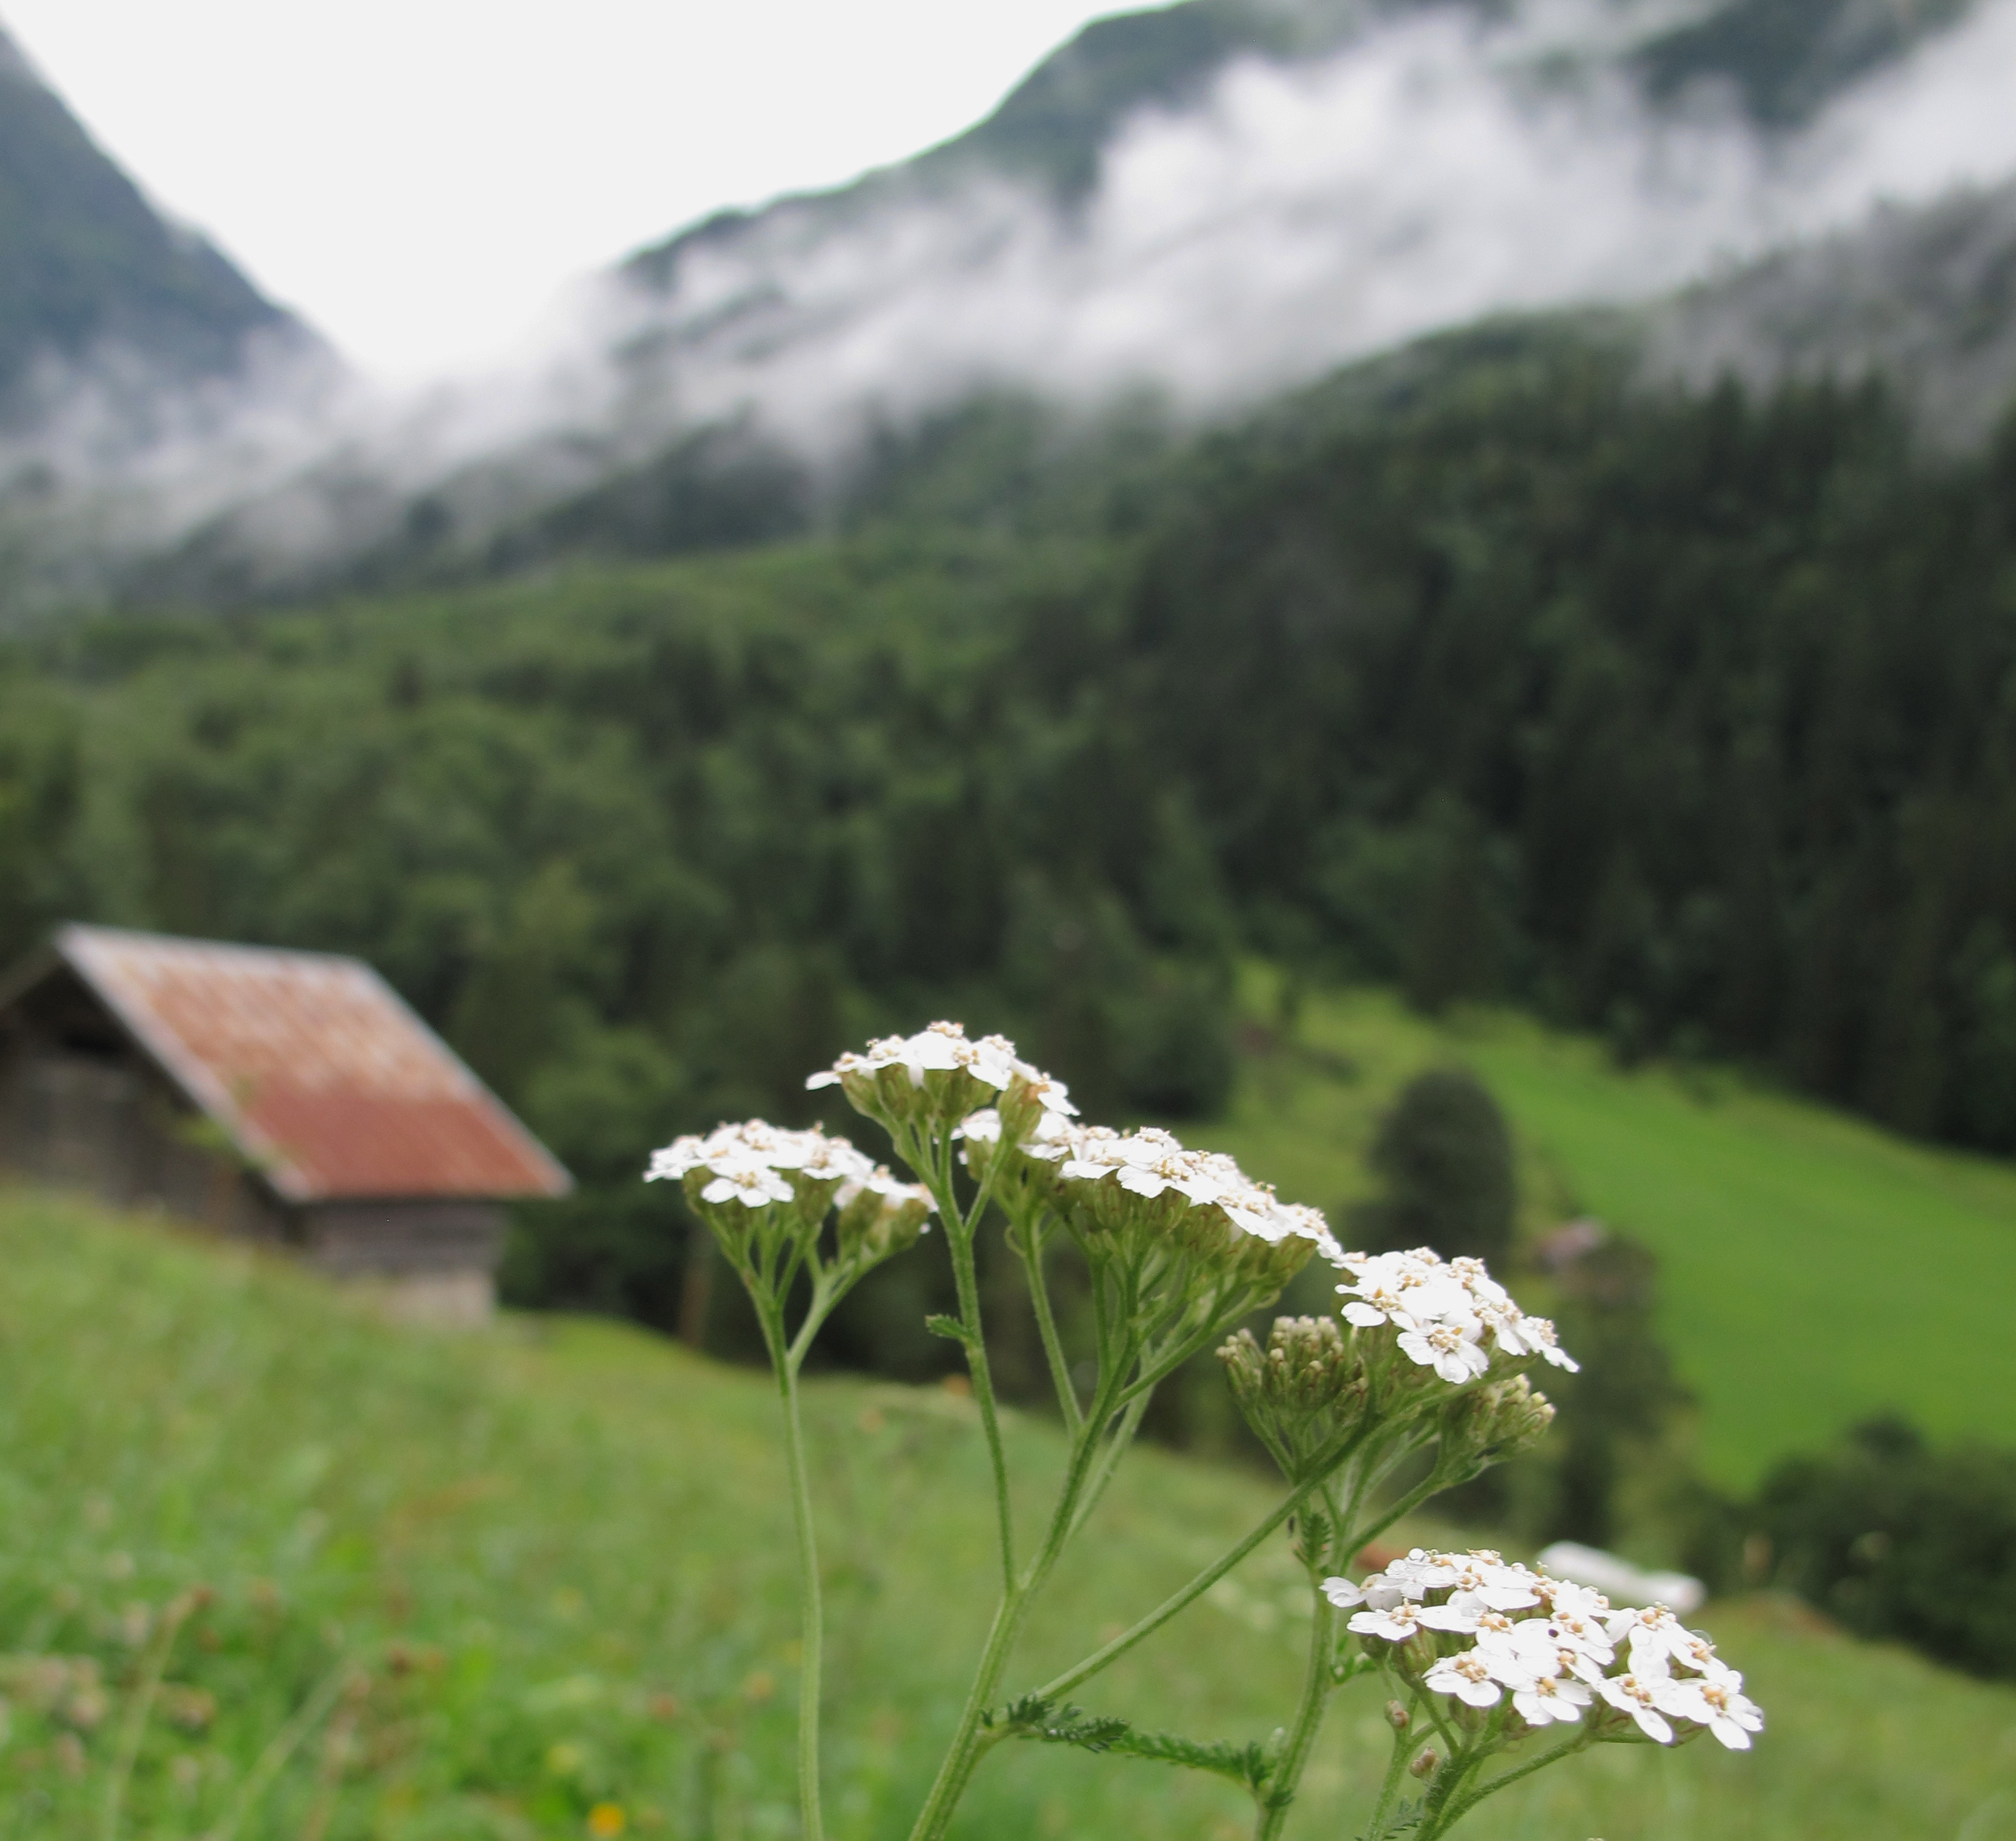 In the mountains of switzerland, with white flowers and small chalets.